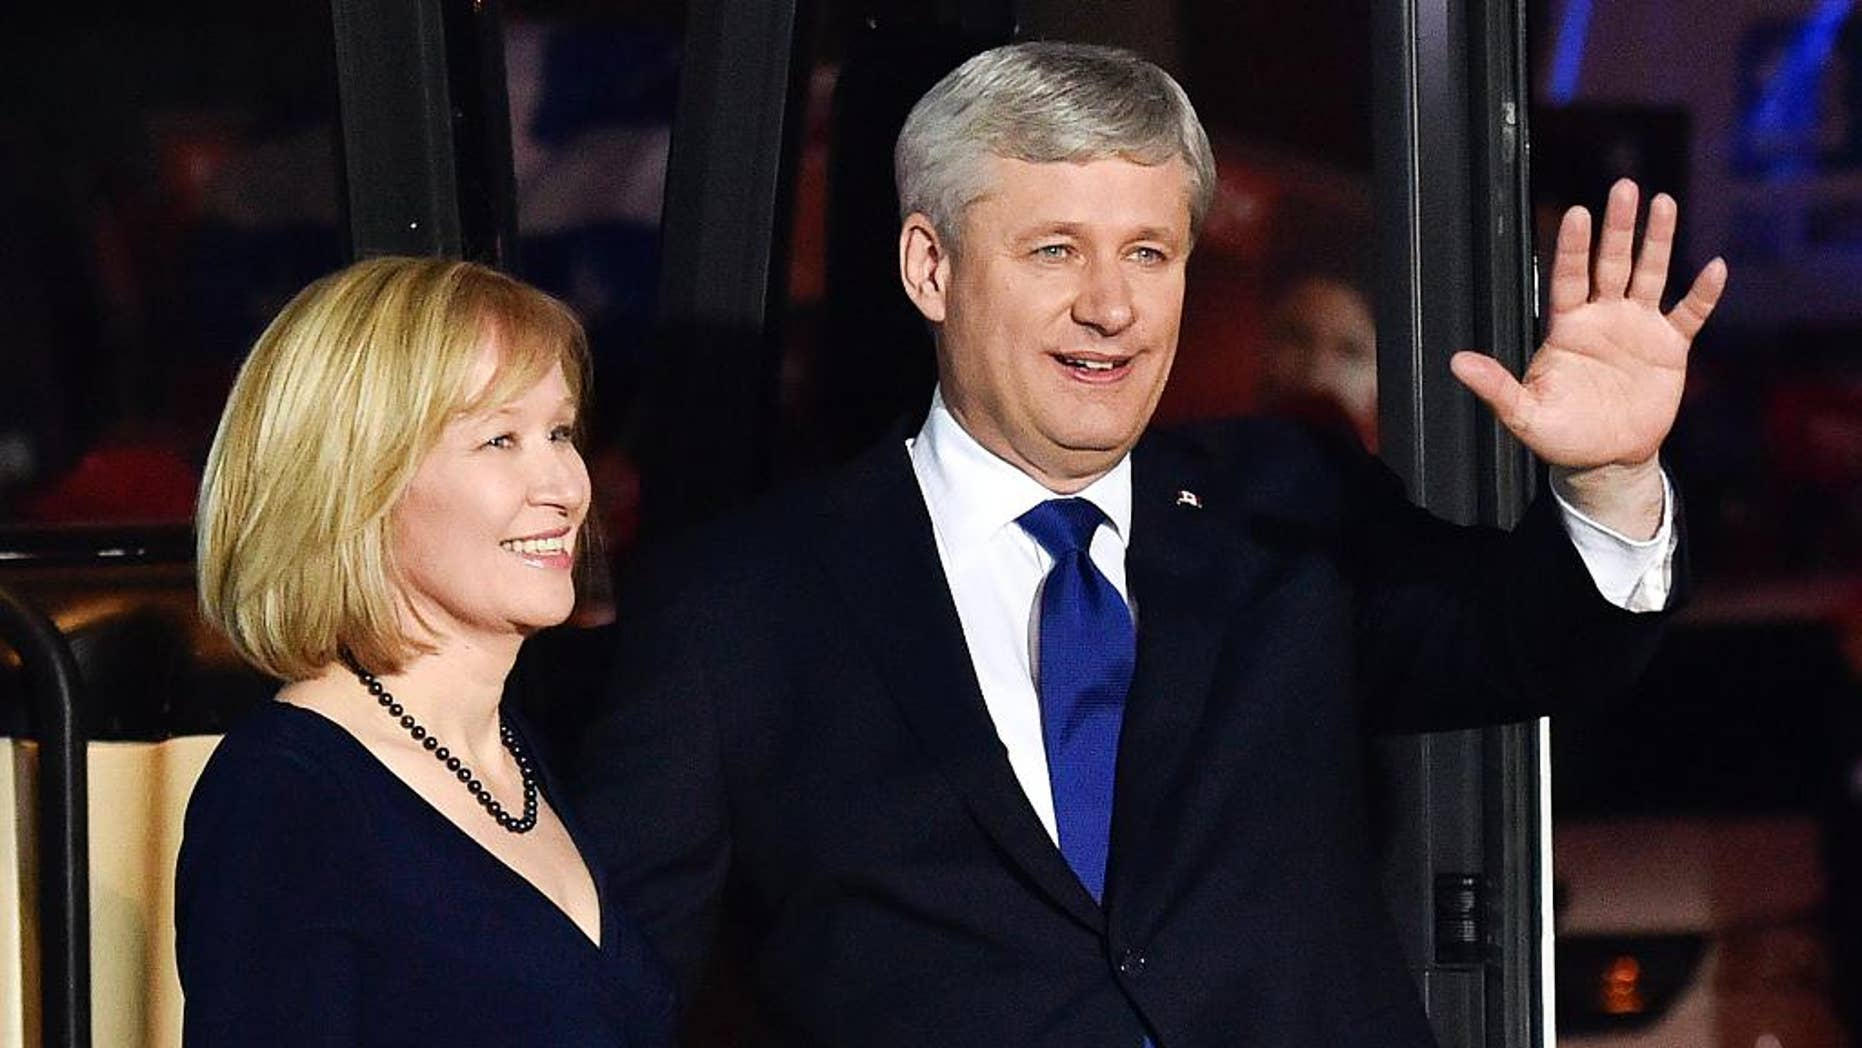 Conservative leader Stephen Harper, right, and his wife Laureen Harper arrive for the final leaders debate in Montreal on Friday, Oct. 2, 2015. (Nathan Denette/The Canadian Press via AP) MANDATORY CREDIT